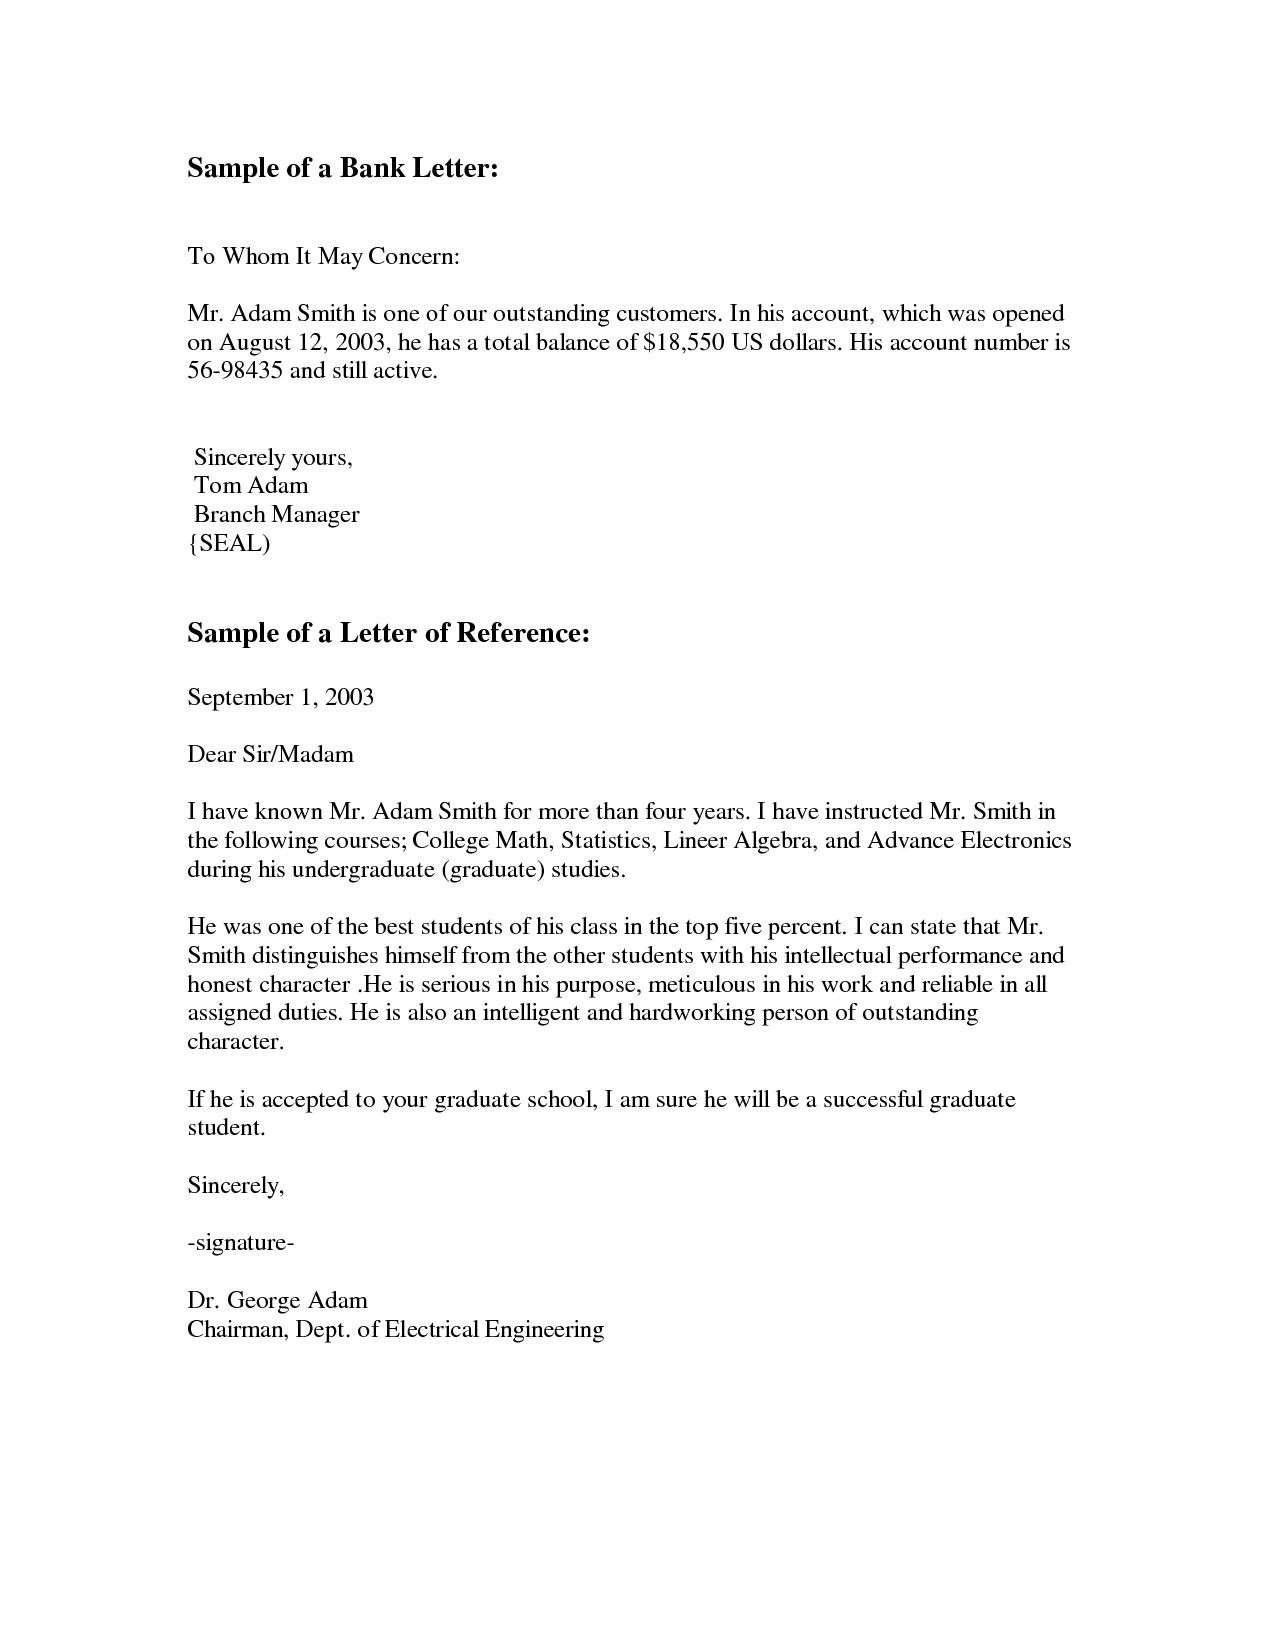 14 Claim Denial Letter Template Examples - Letter Templates